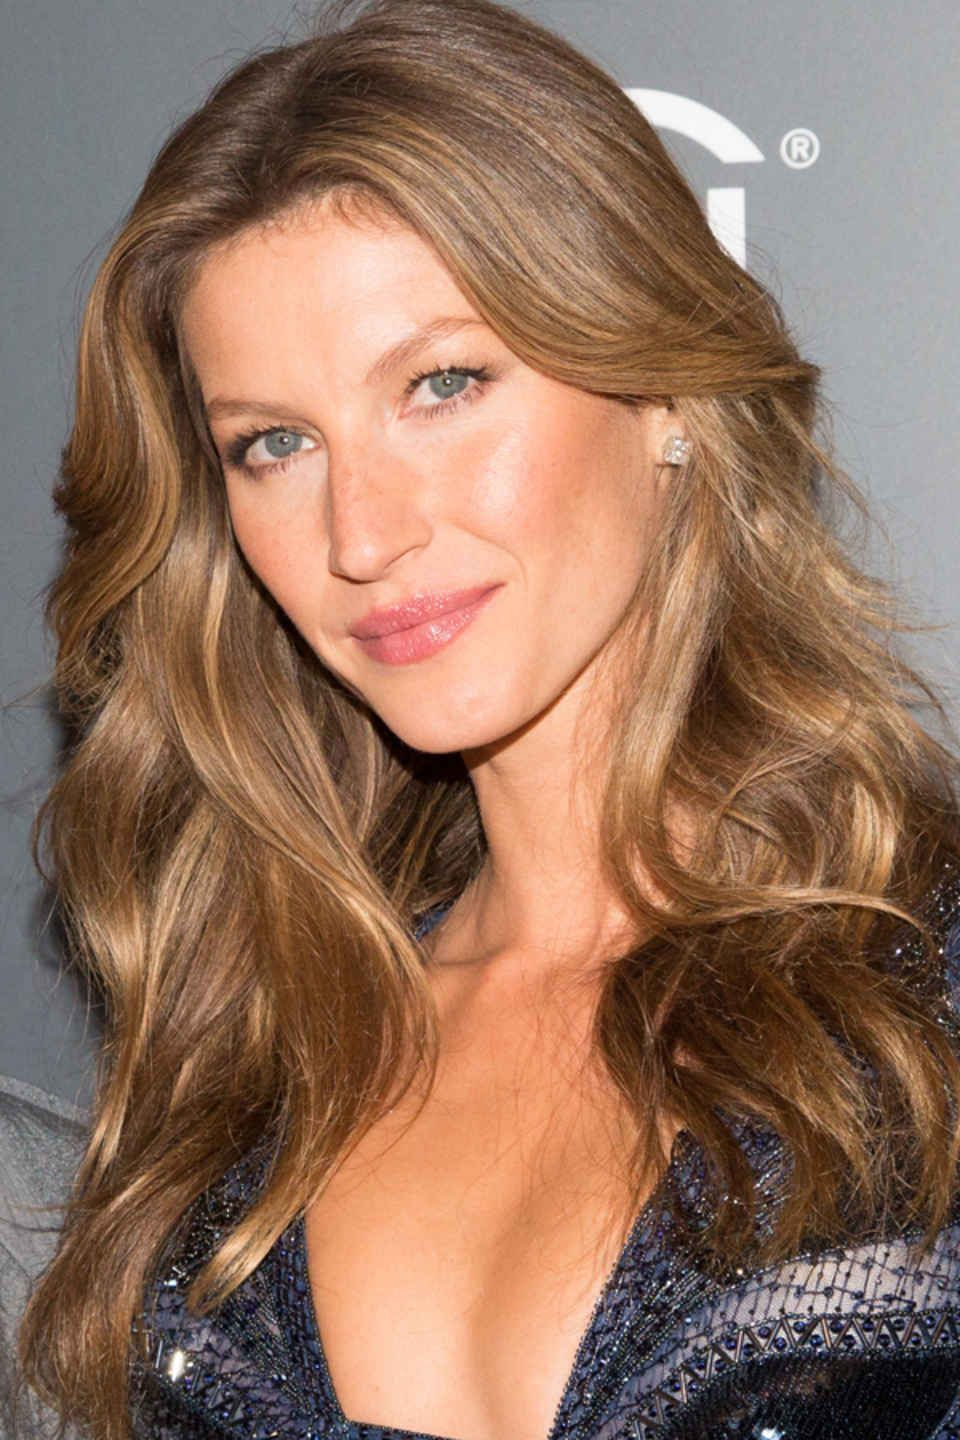 Gisele bündchenus best hair and makeup looks celebrity beauty